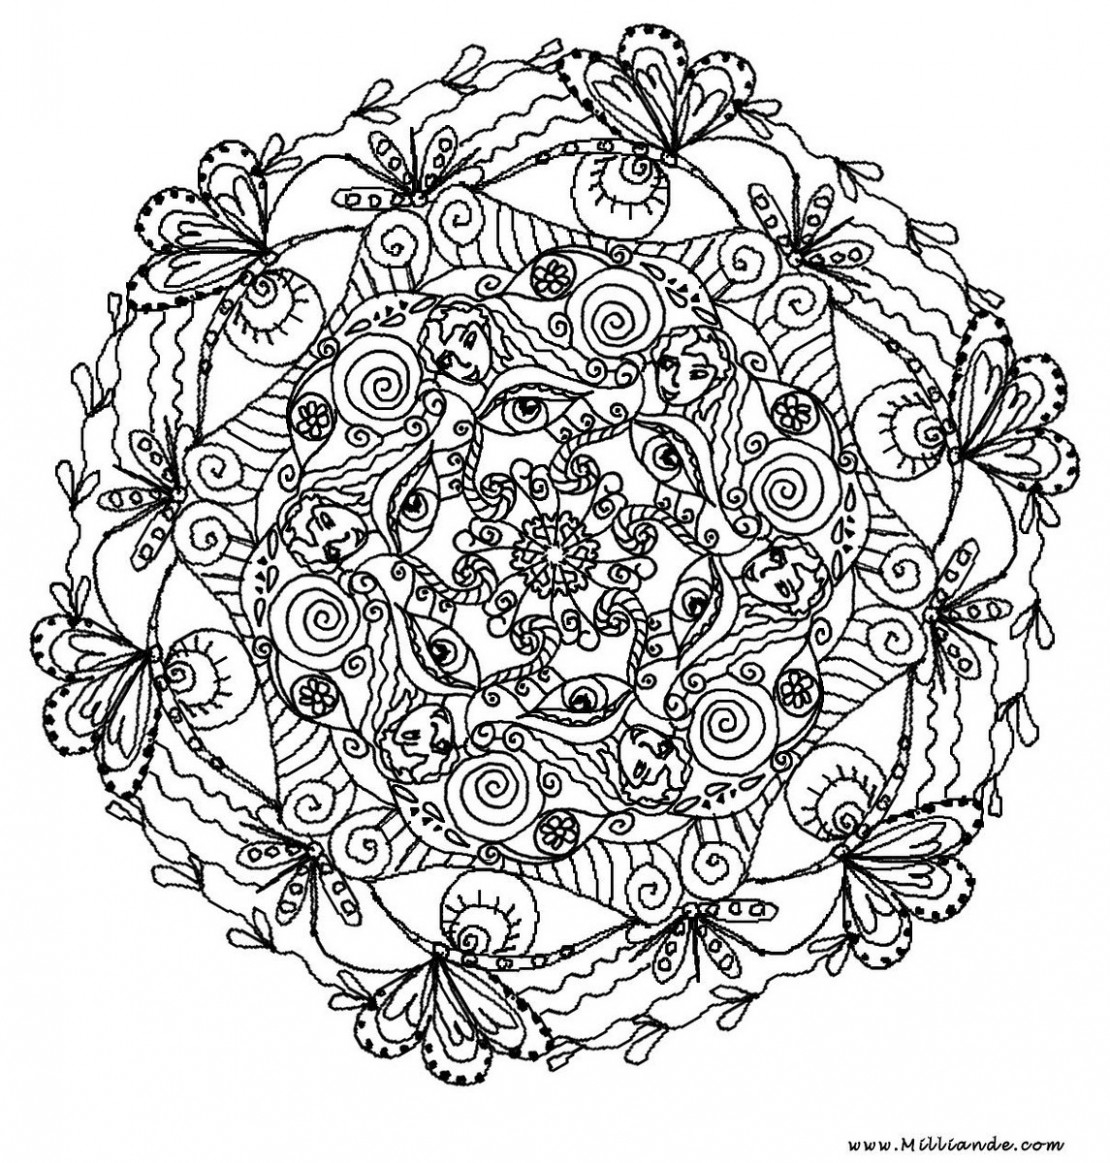 rose flower coloring pages - 3692